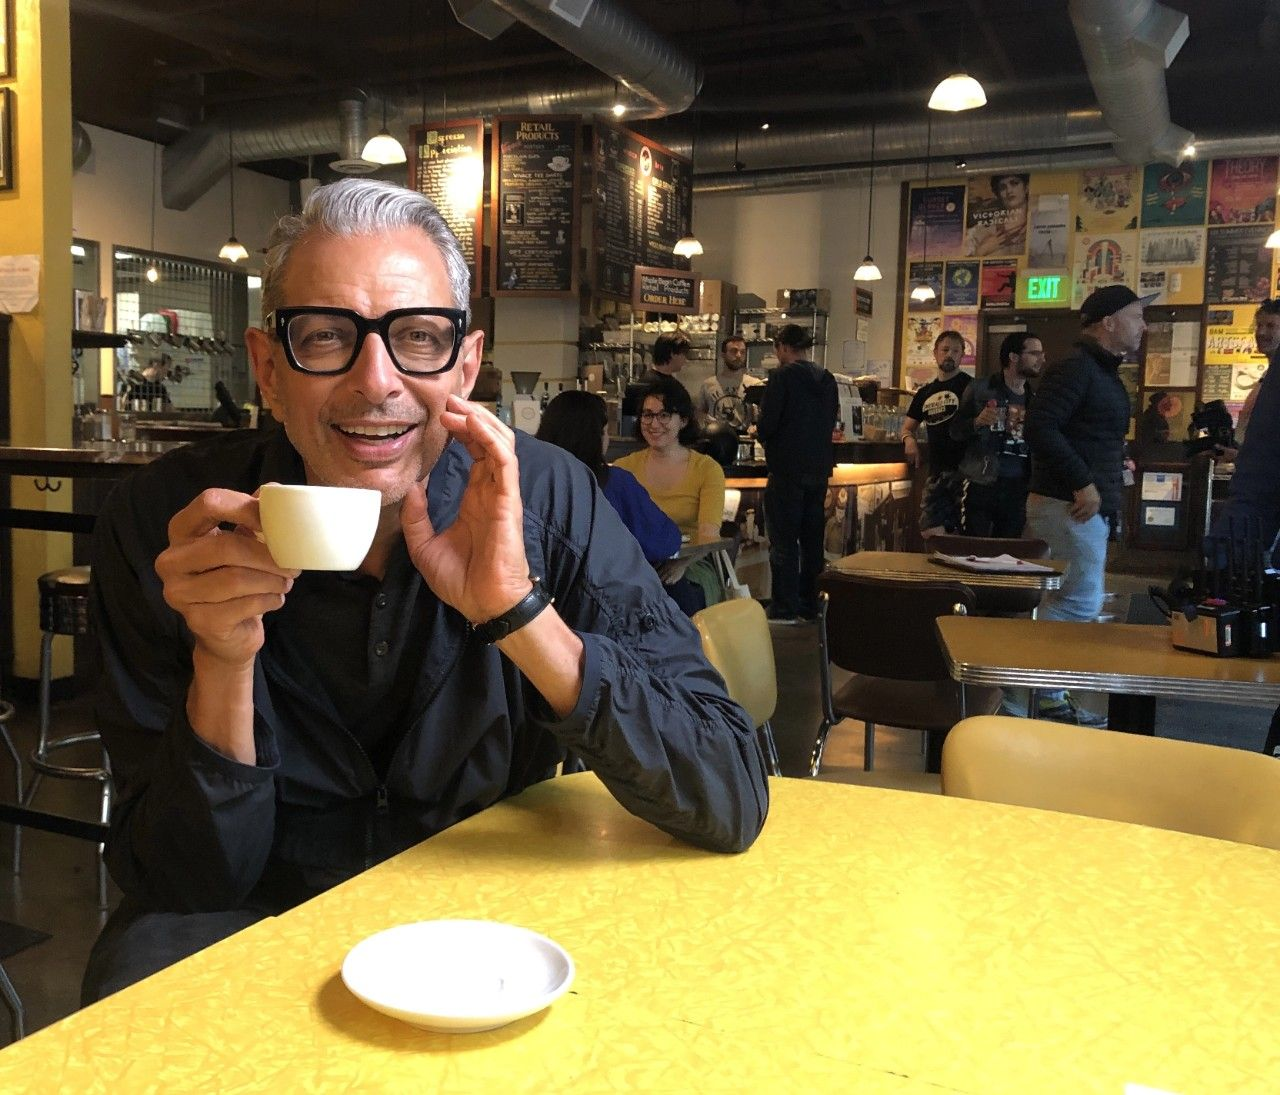 world-according-to-jeff-goldblum-coffee